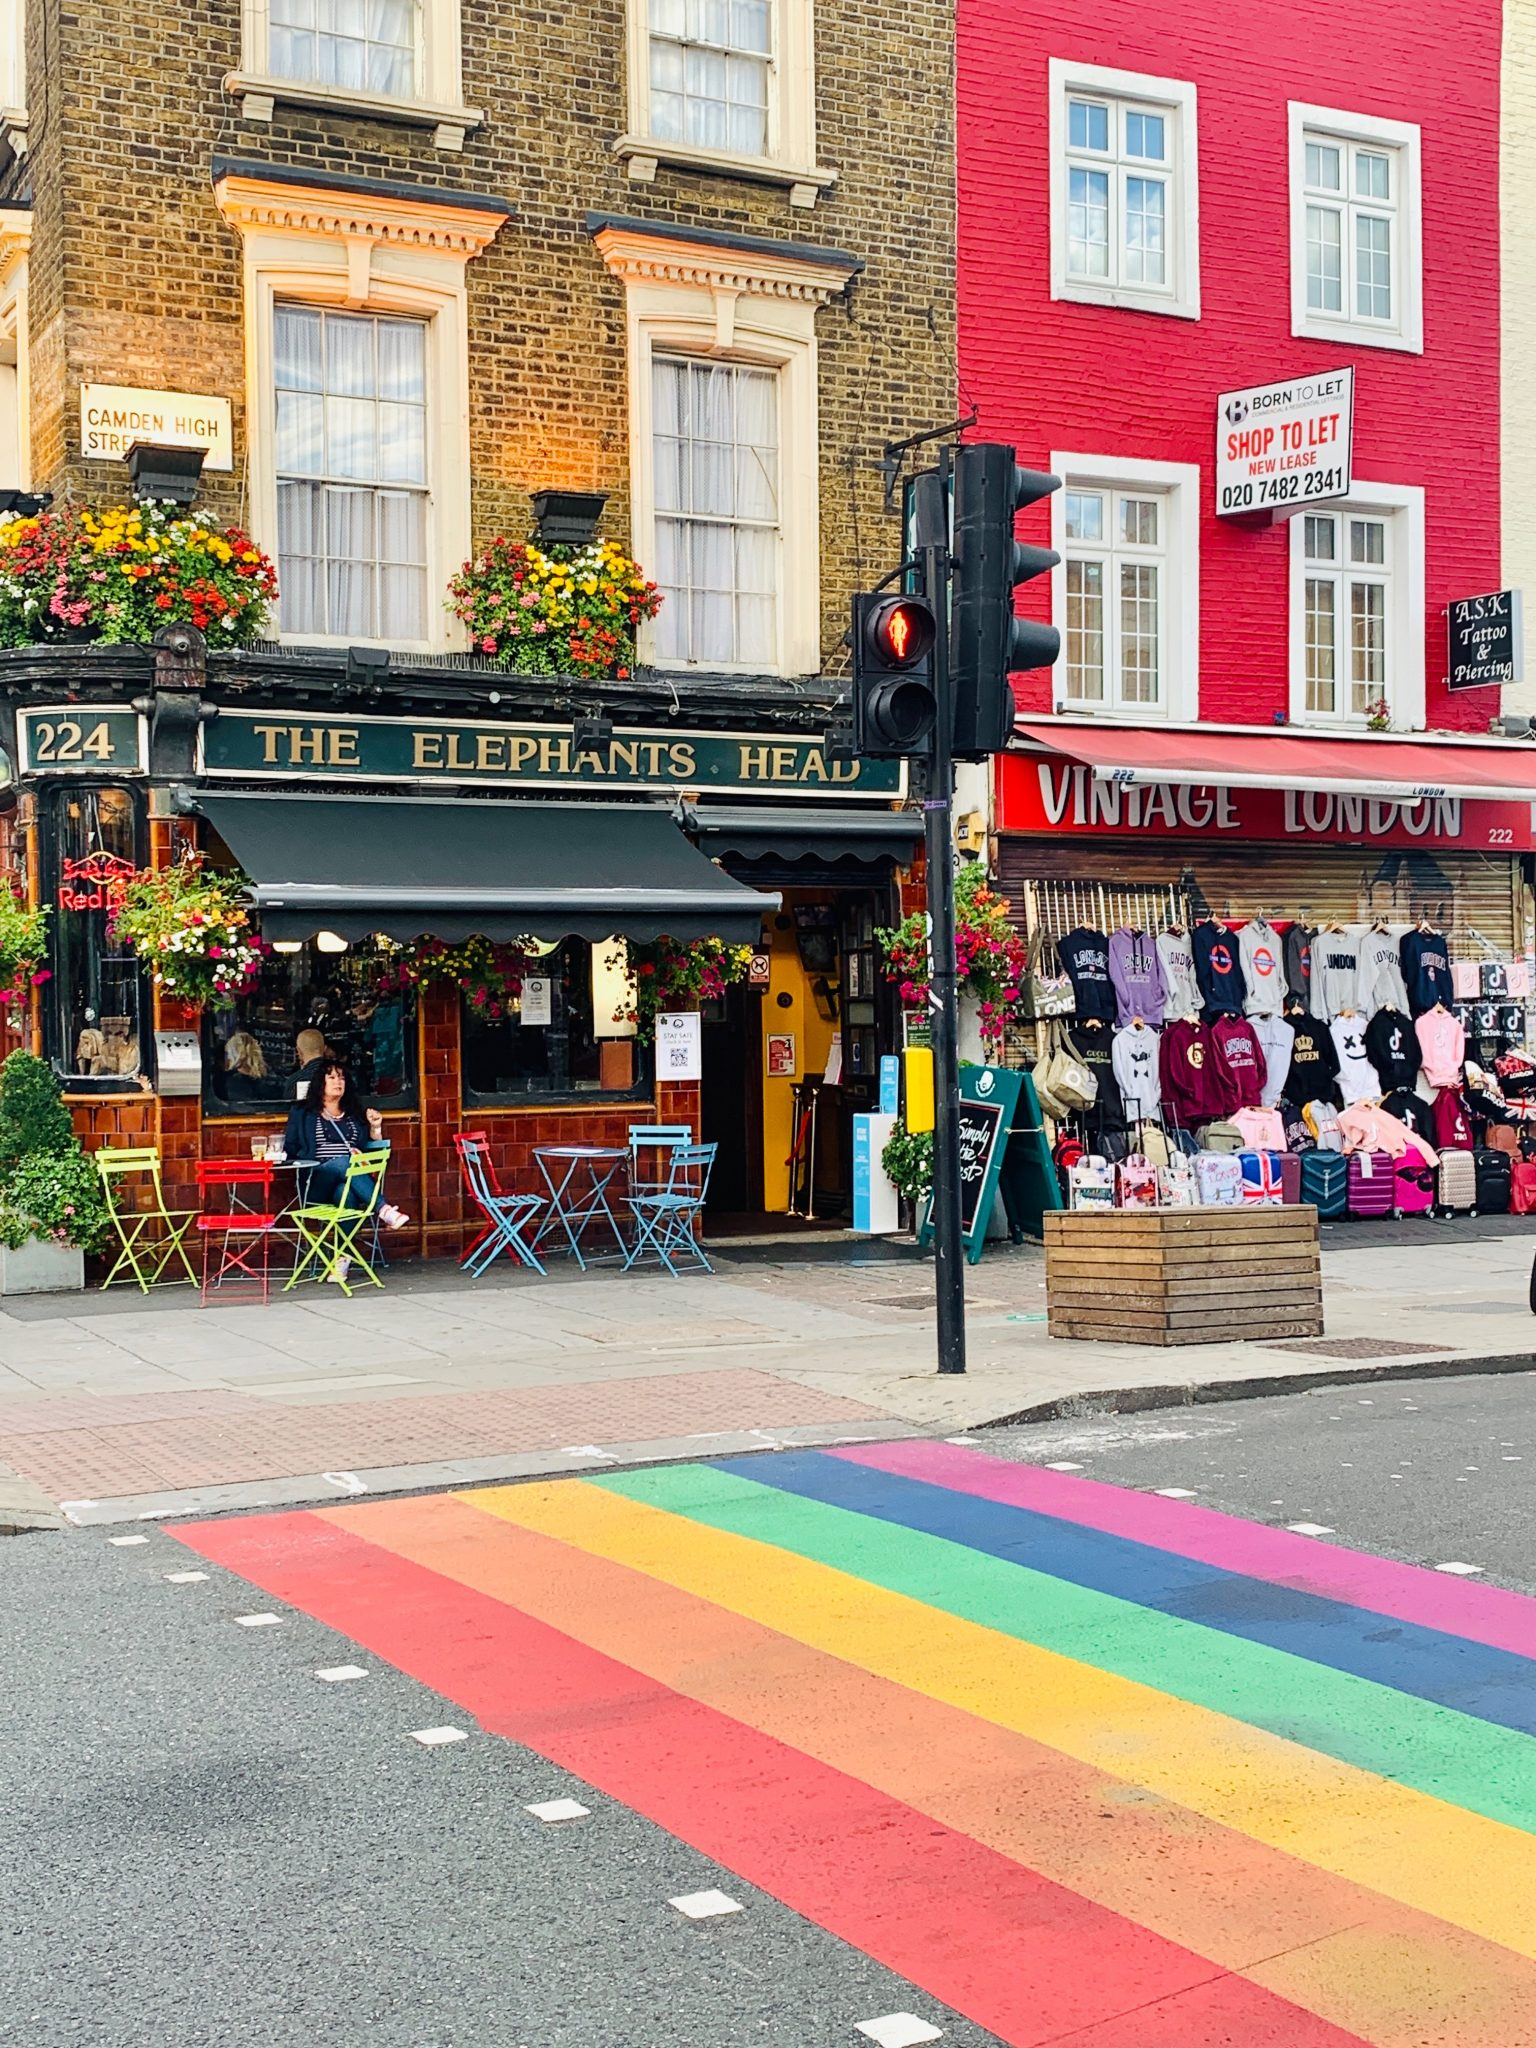 camden town living in London